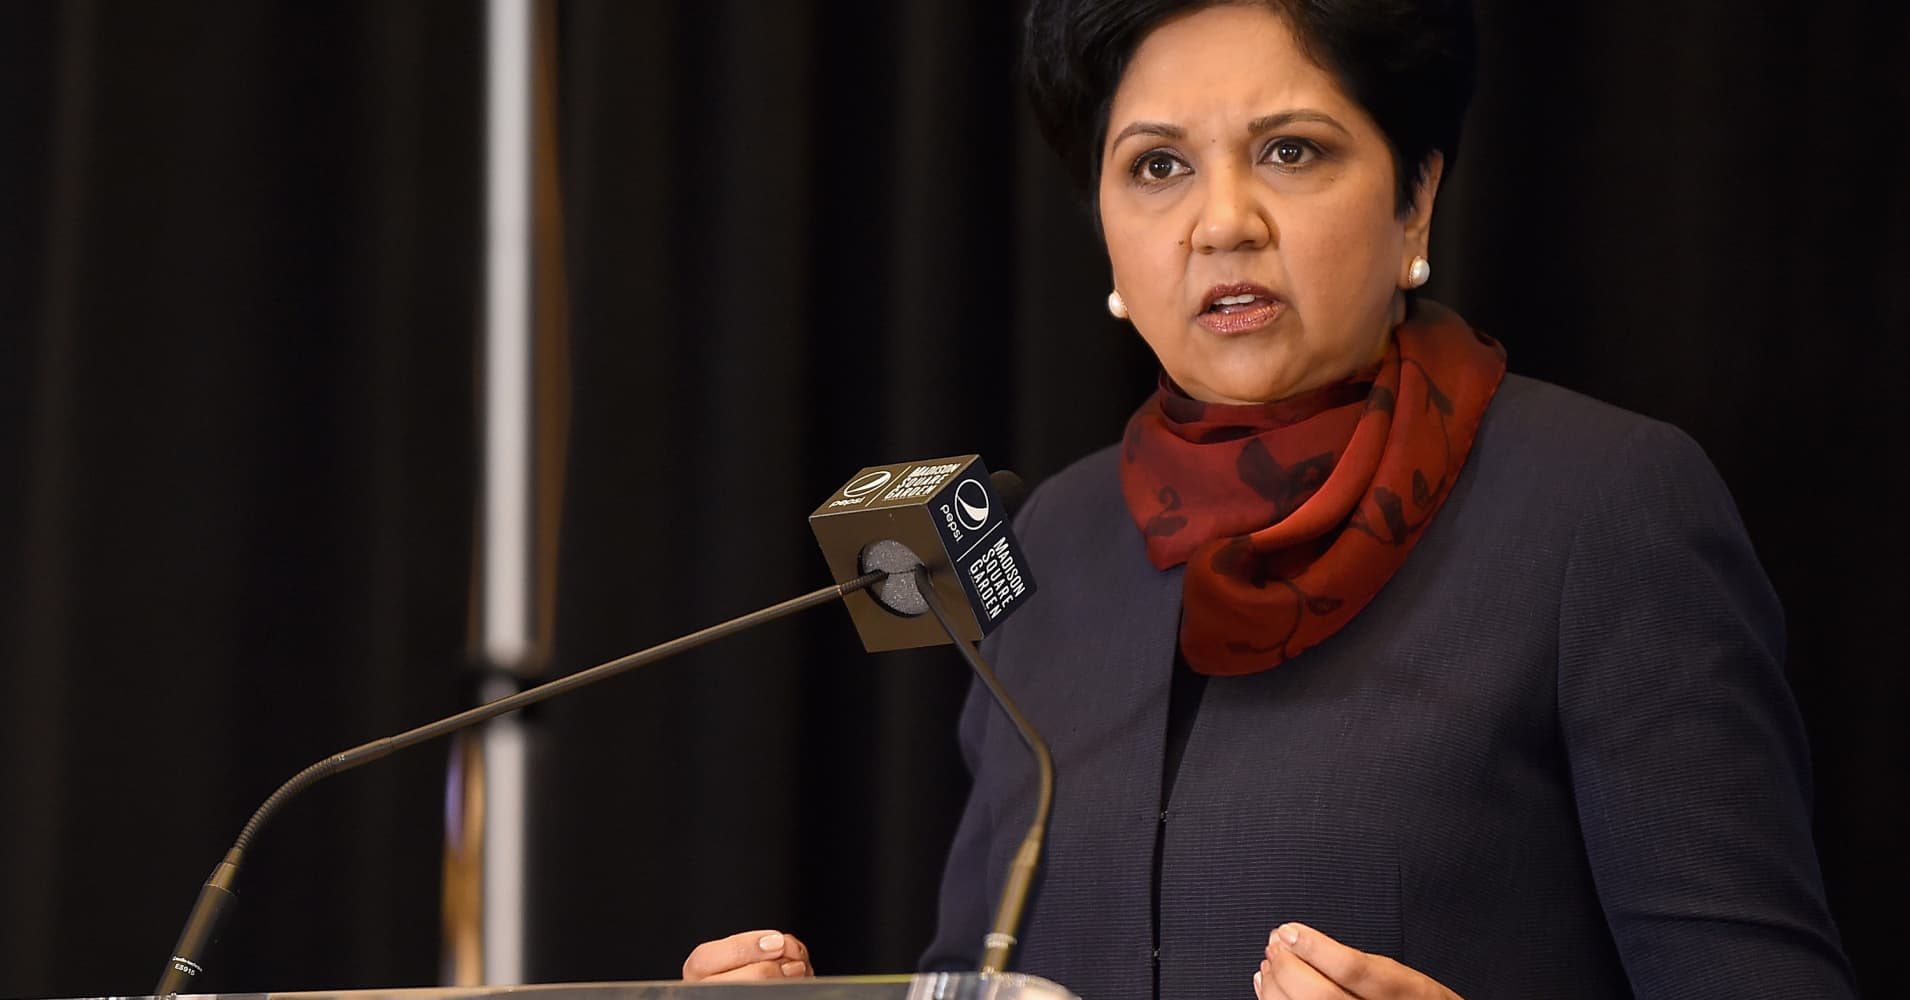 Indra Nooyi attends The Madison Square Garden Company Announcement.